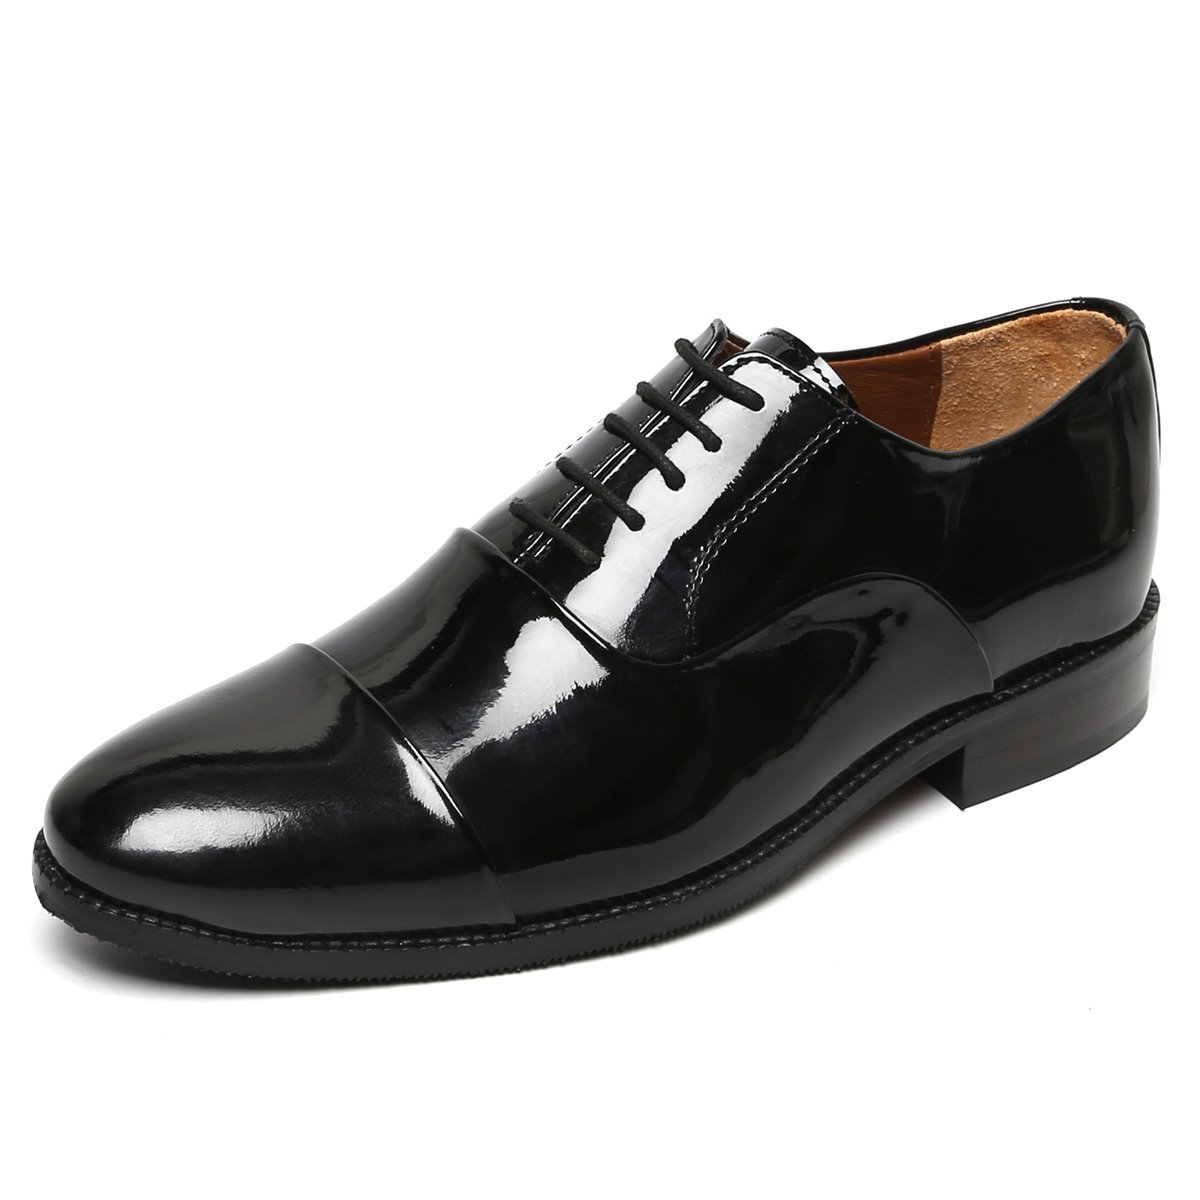 Black Color Painted Leather Formal Shoe